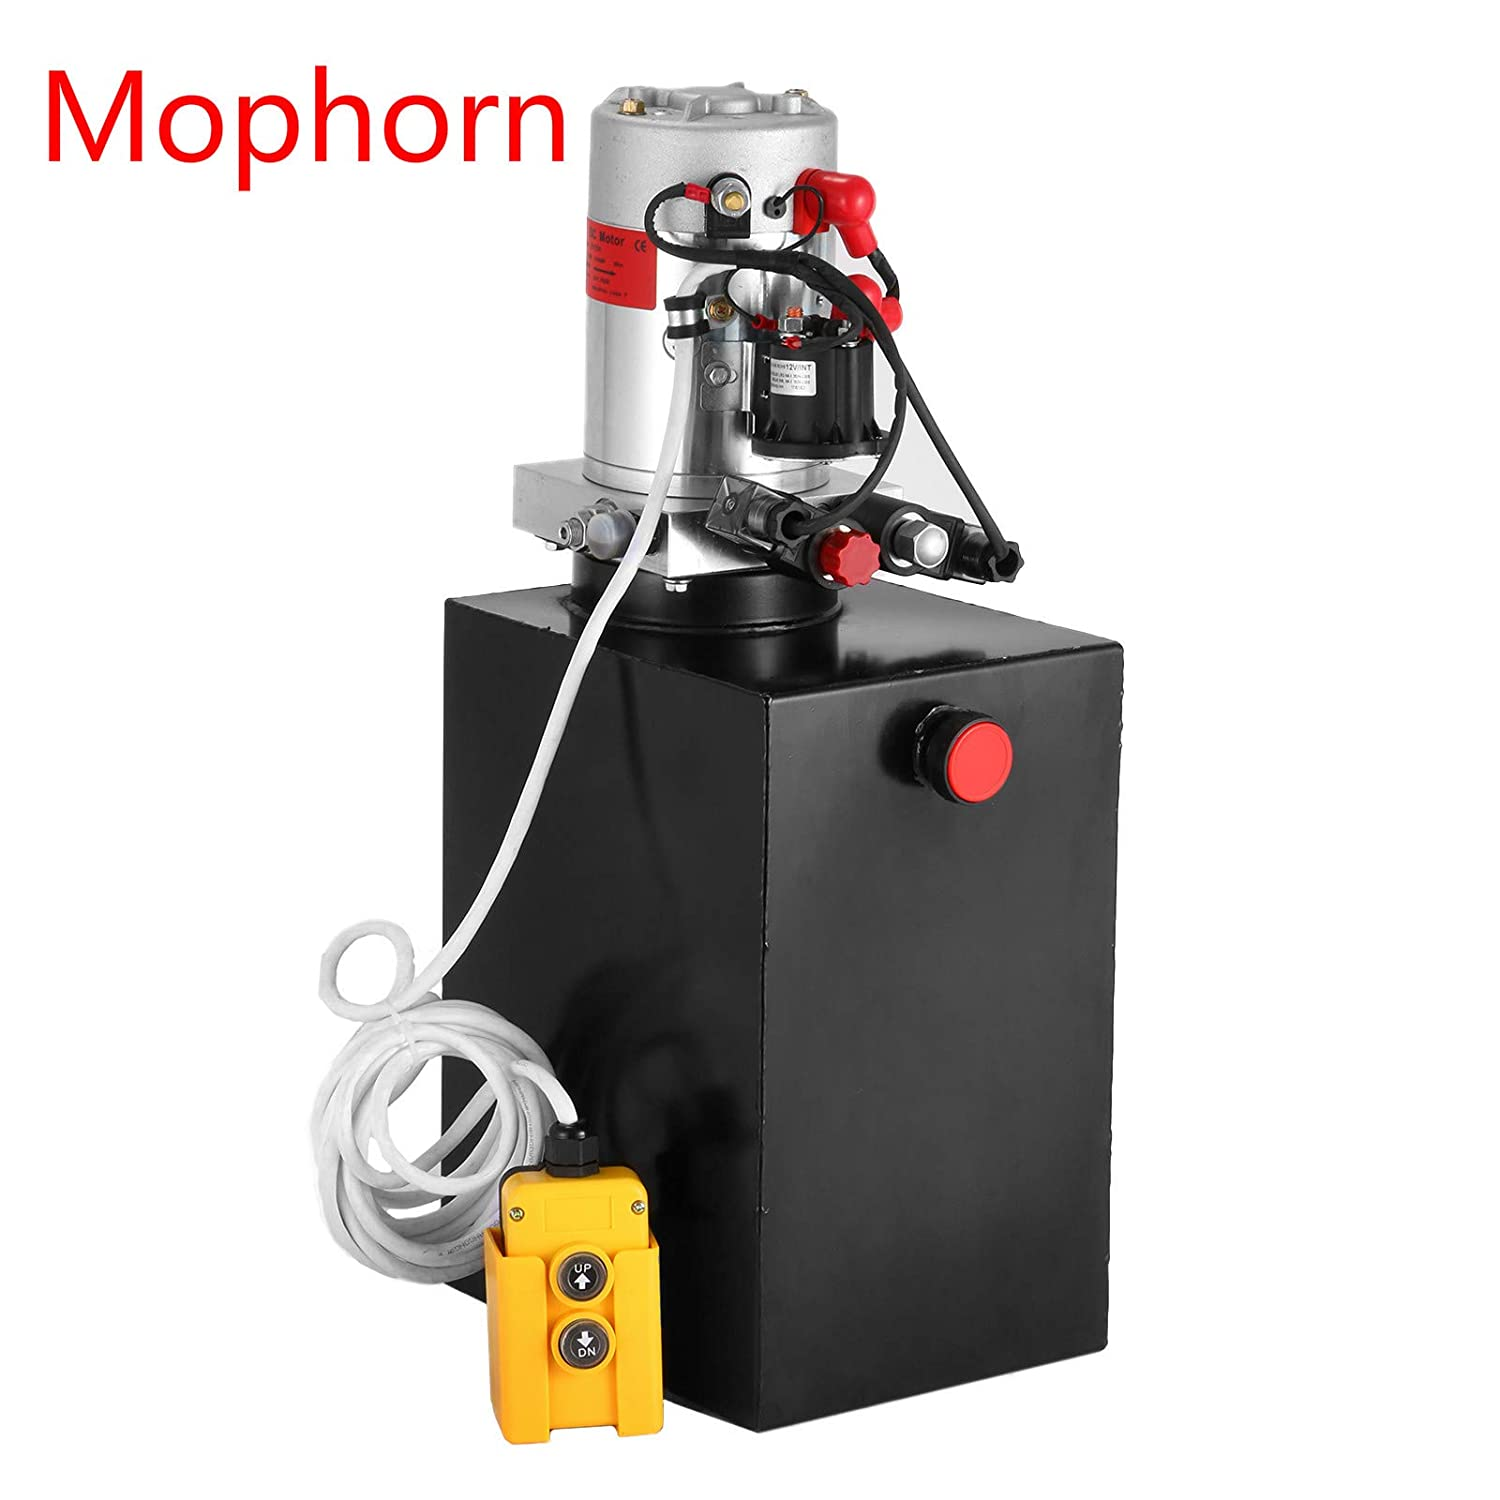 Mophorn 12V/DC Hydraulic Pump 15 Quart/ 3 9 Gallon Double Acting Metal  Reservoir Hydraulic Pump Unit Remotely Controlled for Dump Trailer (15